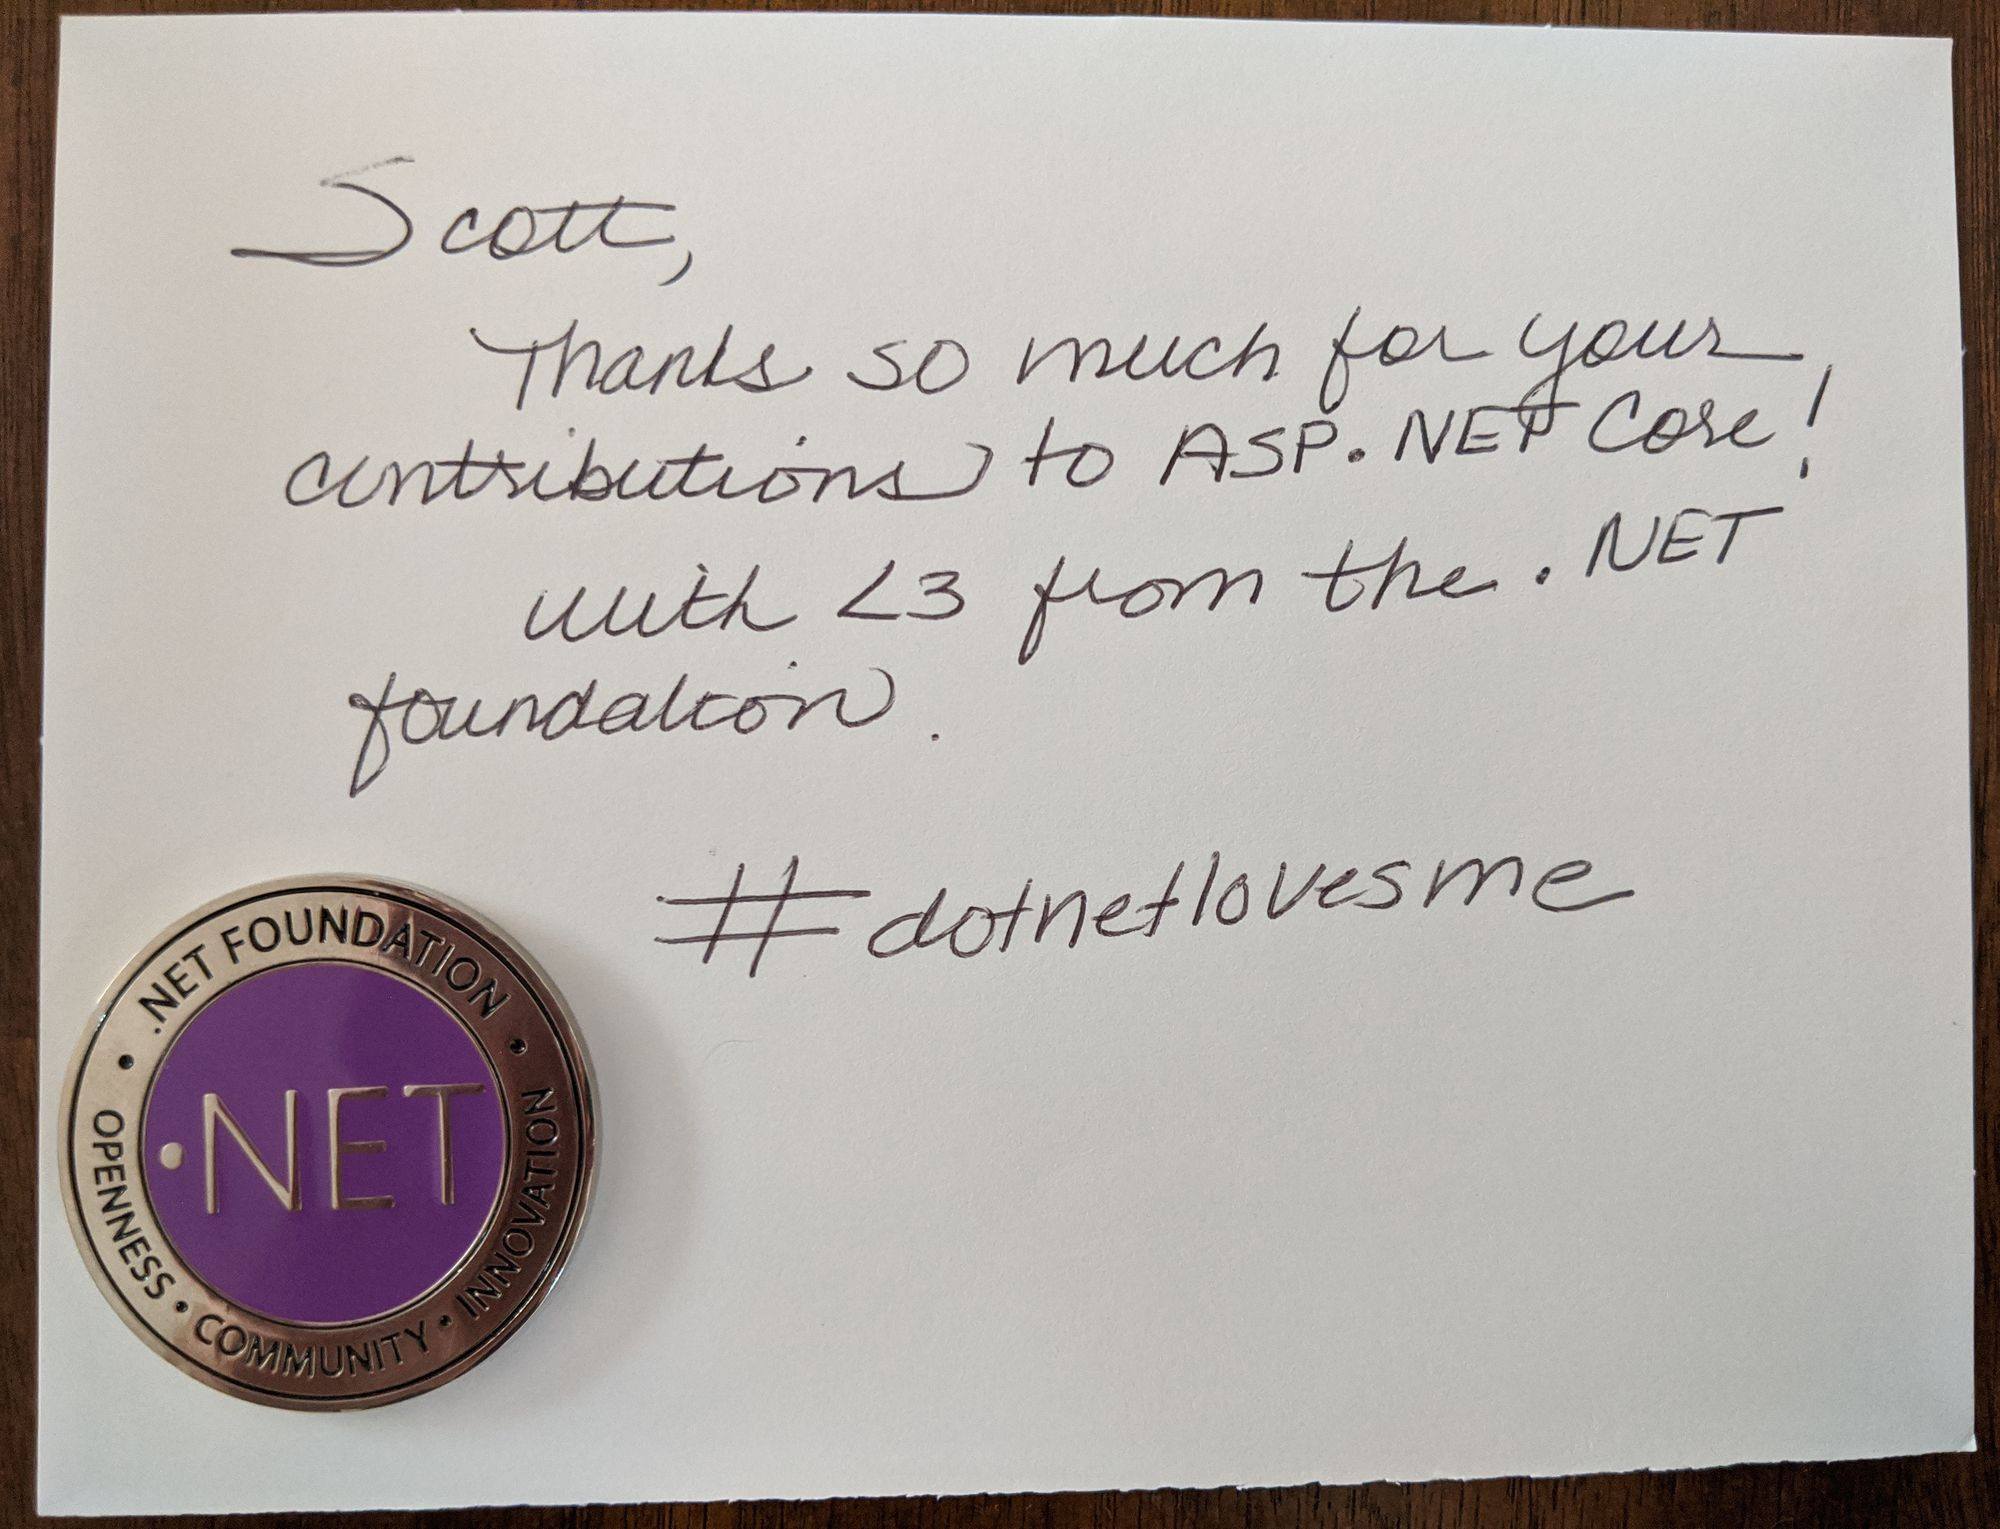 .NET Foundation thank you note